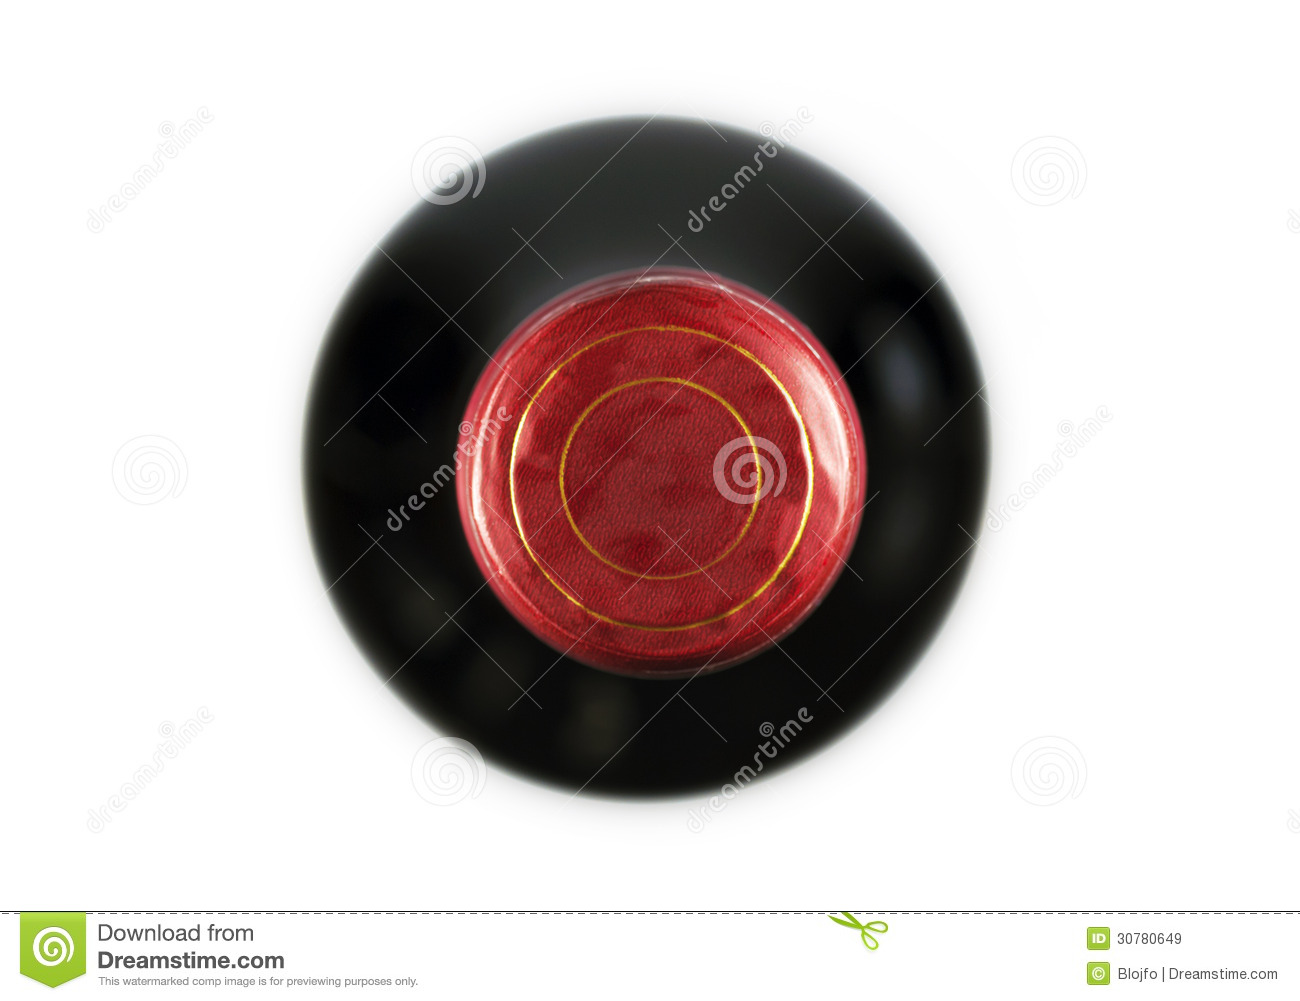 Wine bottle top royalty free stock images image 30780649 for How to cut the top off a wine bottle